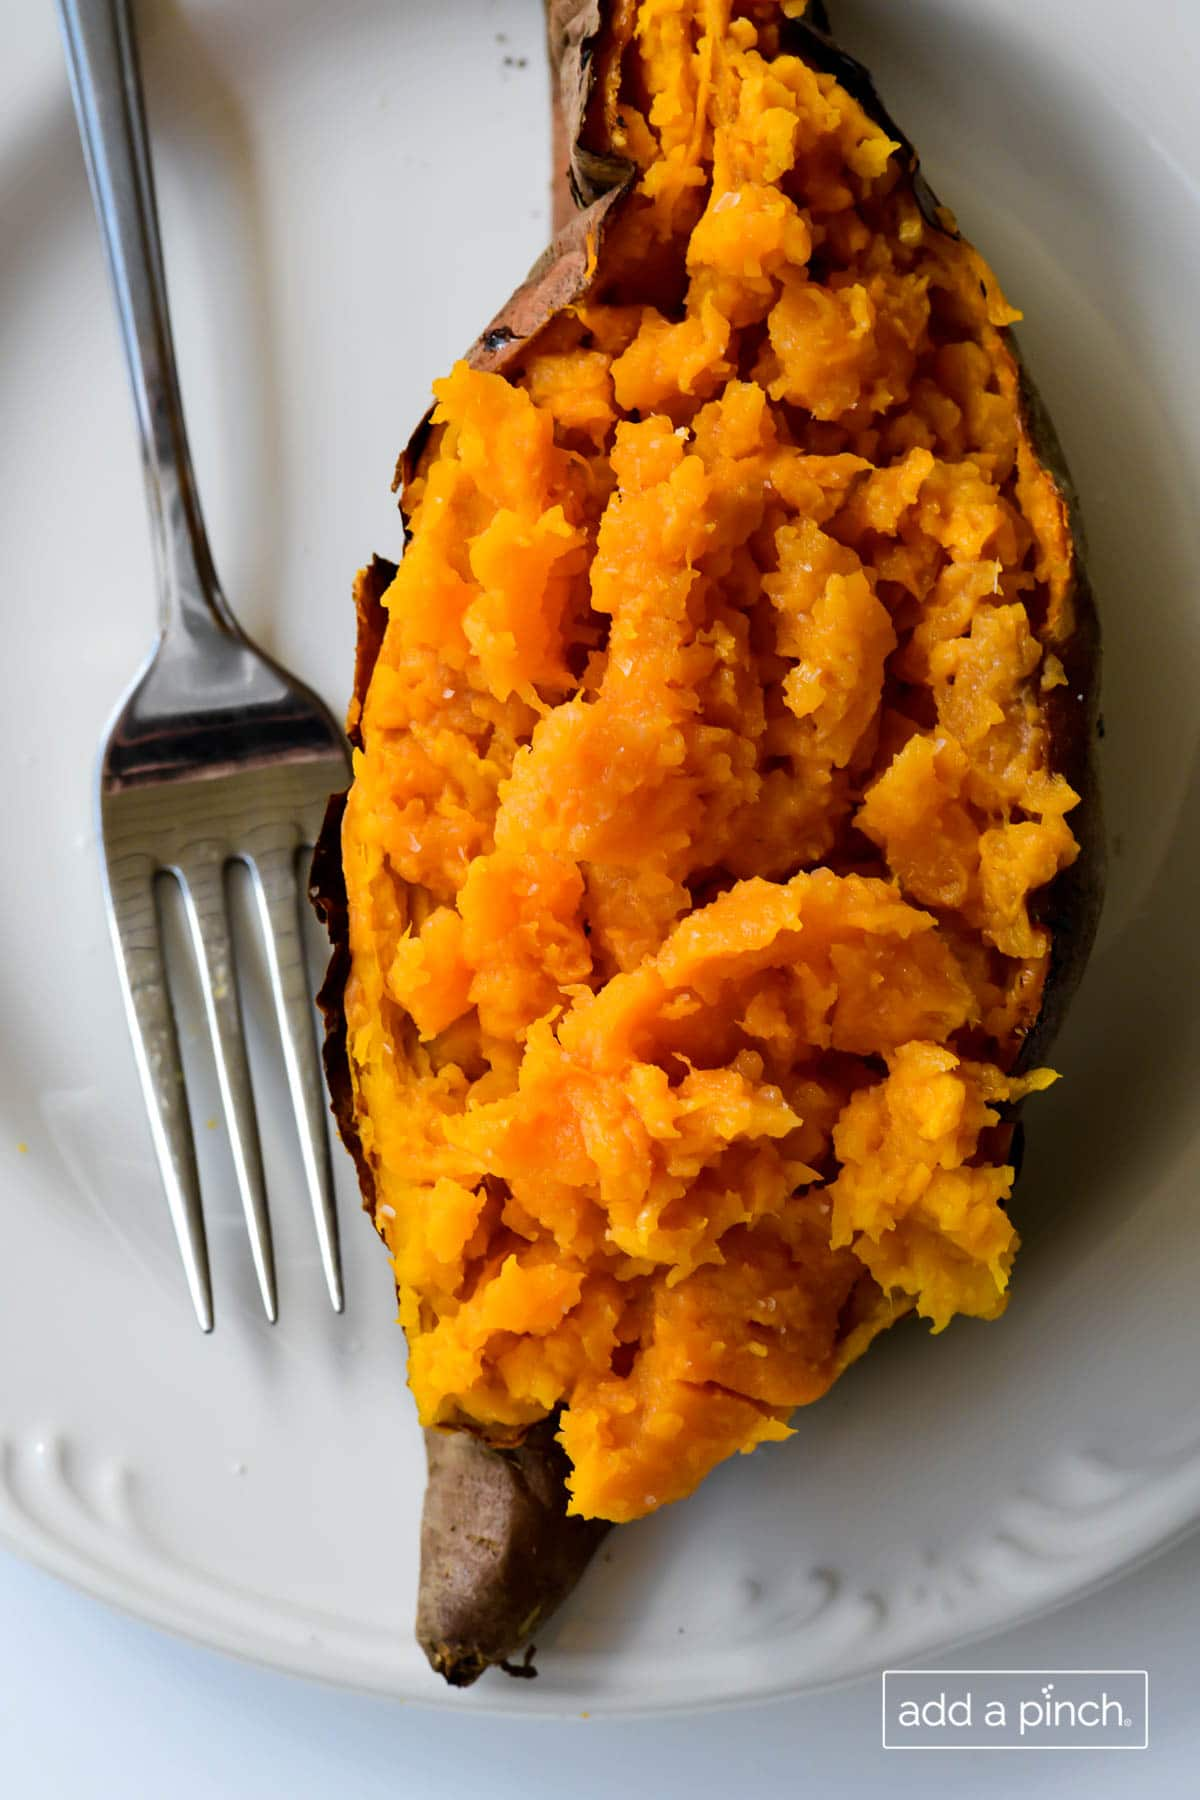 Overhead photograph of baked sweet potato on a white plate.